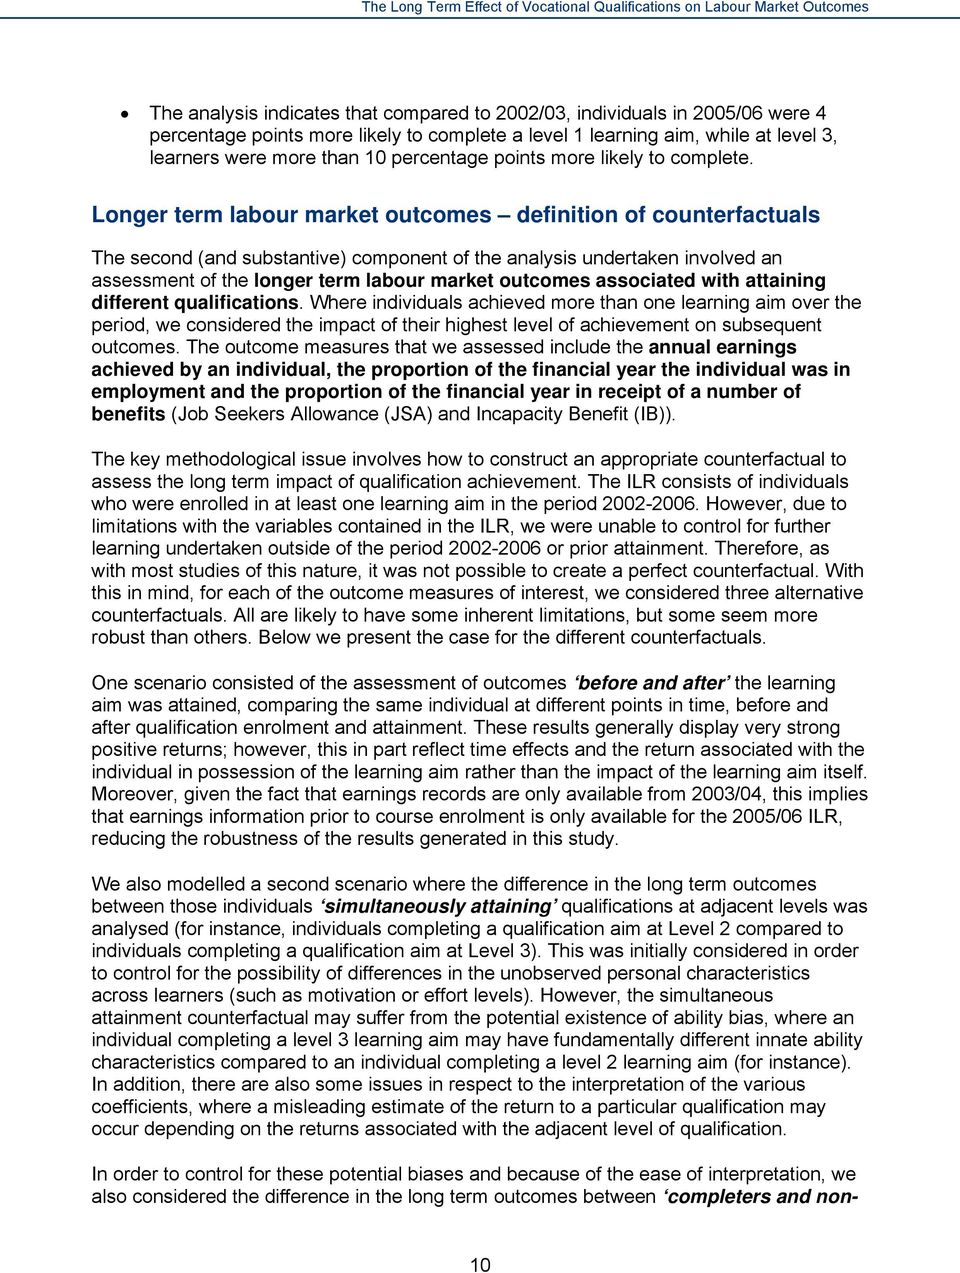 Longer term labour market outcomes definition of counterfactuals The second (and substantive) component of the analysis undertaken involved an assessment of the longer term labour market outcomes